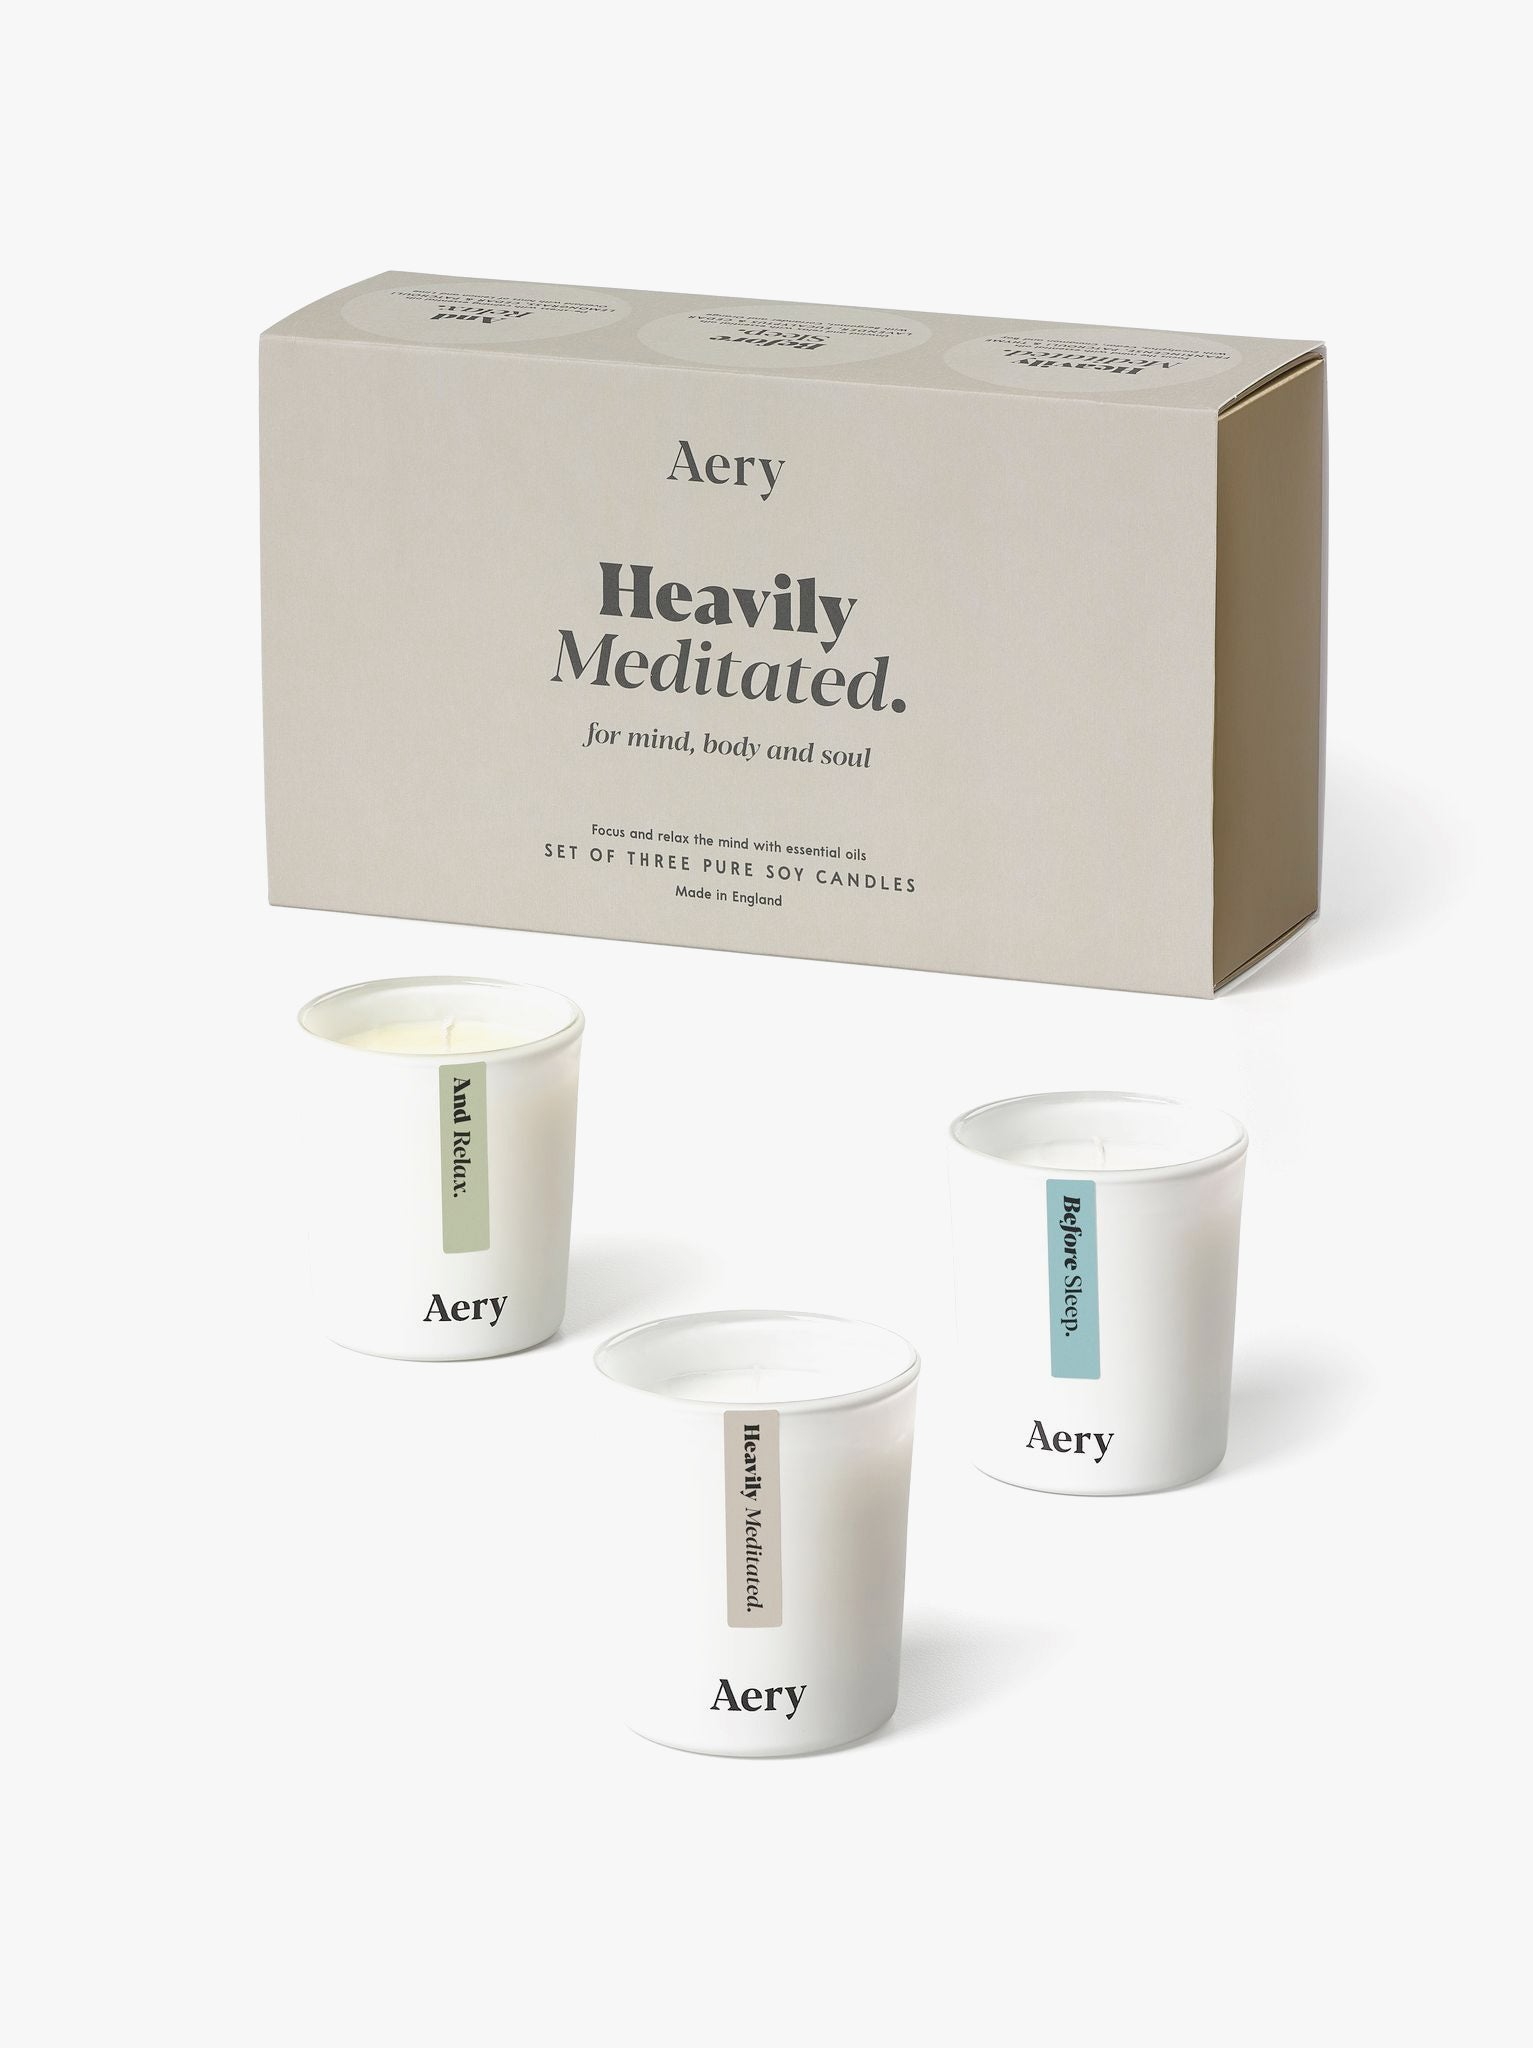 Aery Heavily Meditated Votive Candle Gift Set